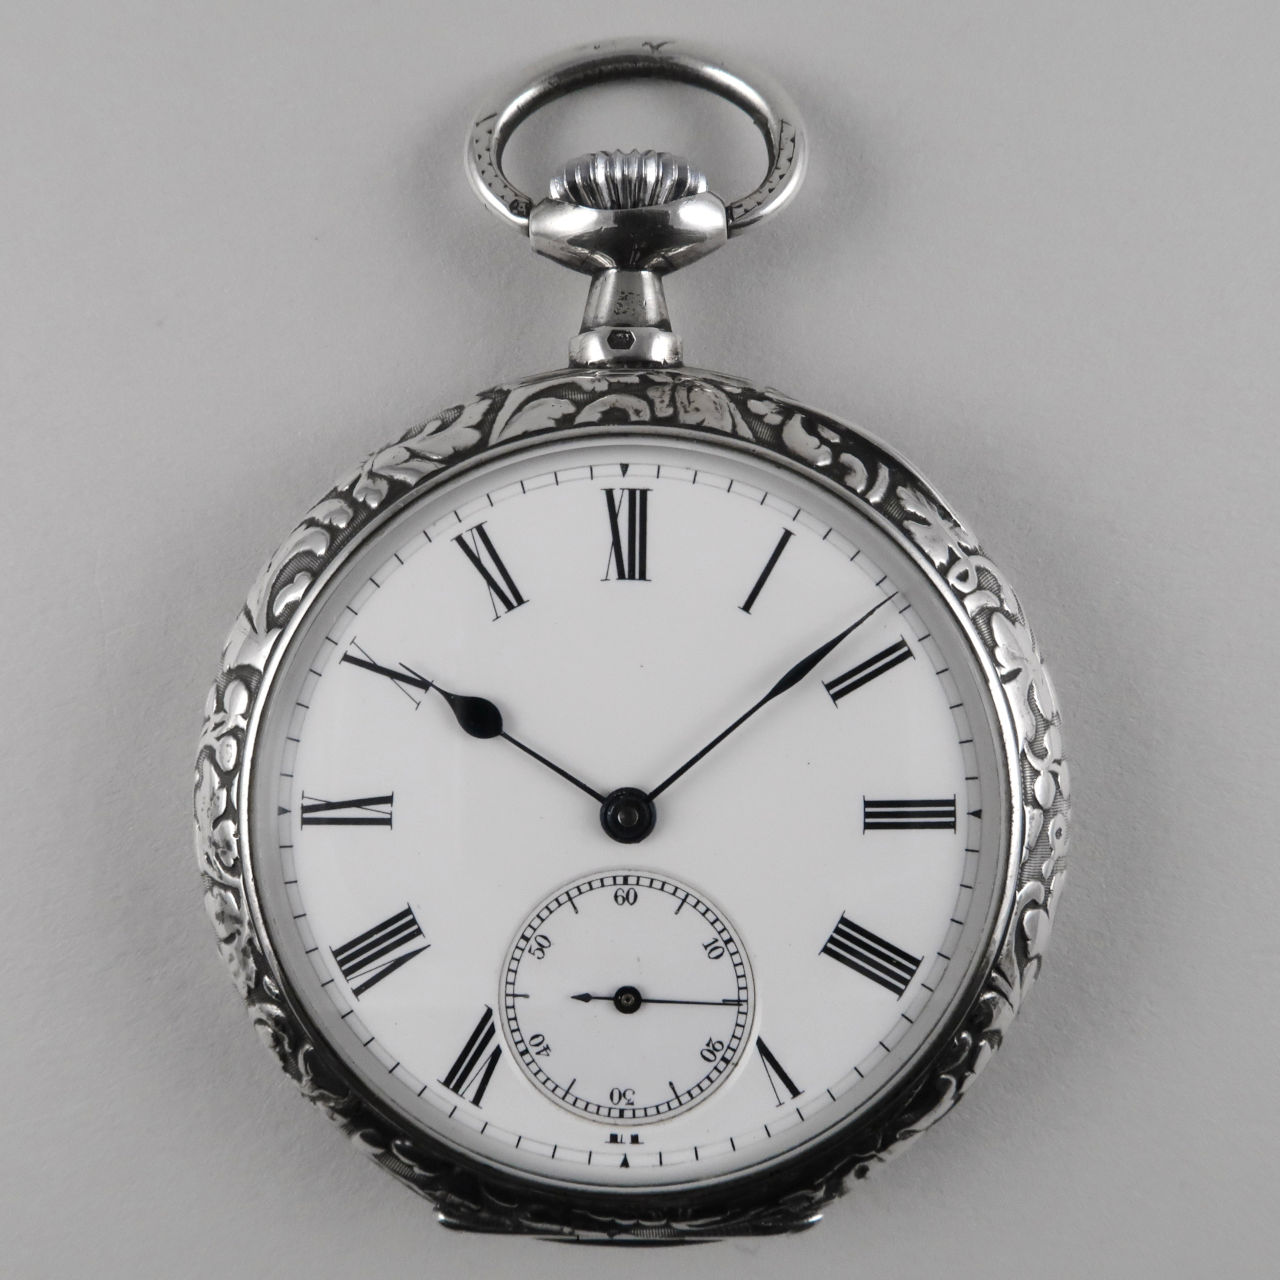 Omega cal. 17''' pocket watch, circa 1898